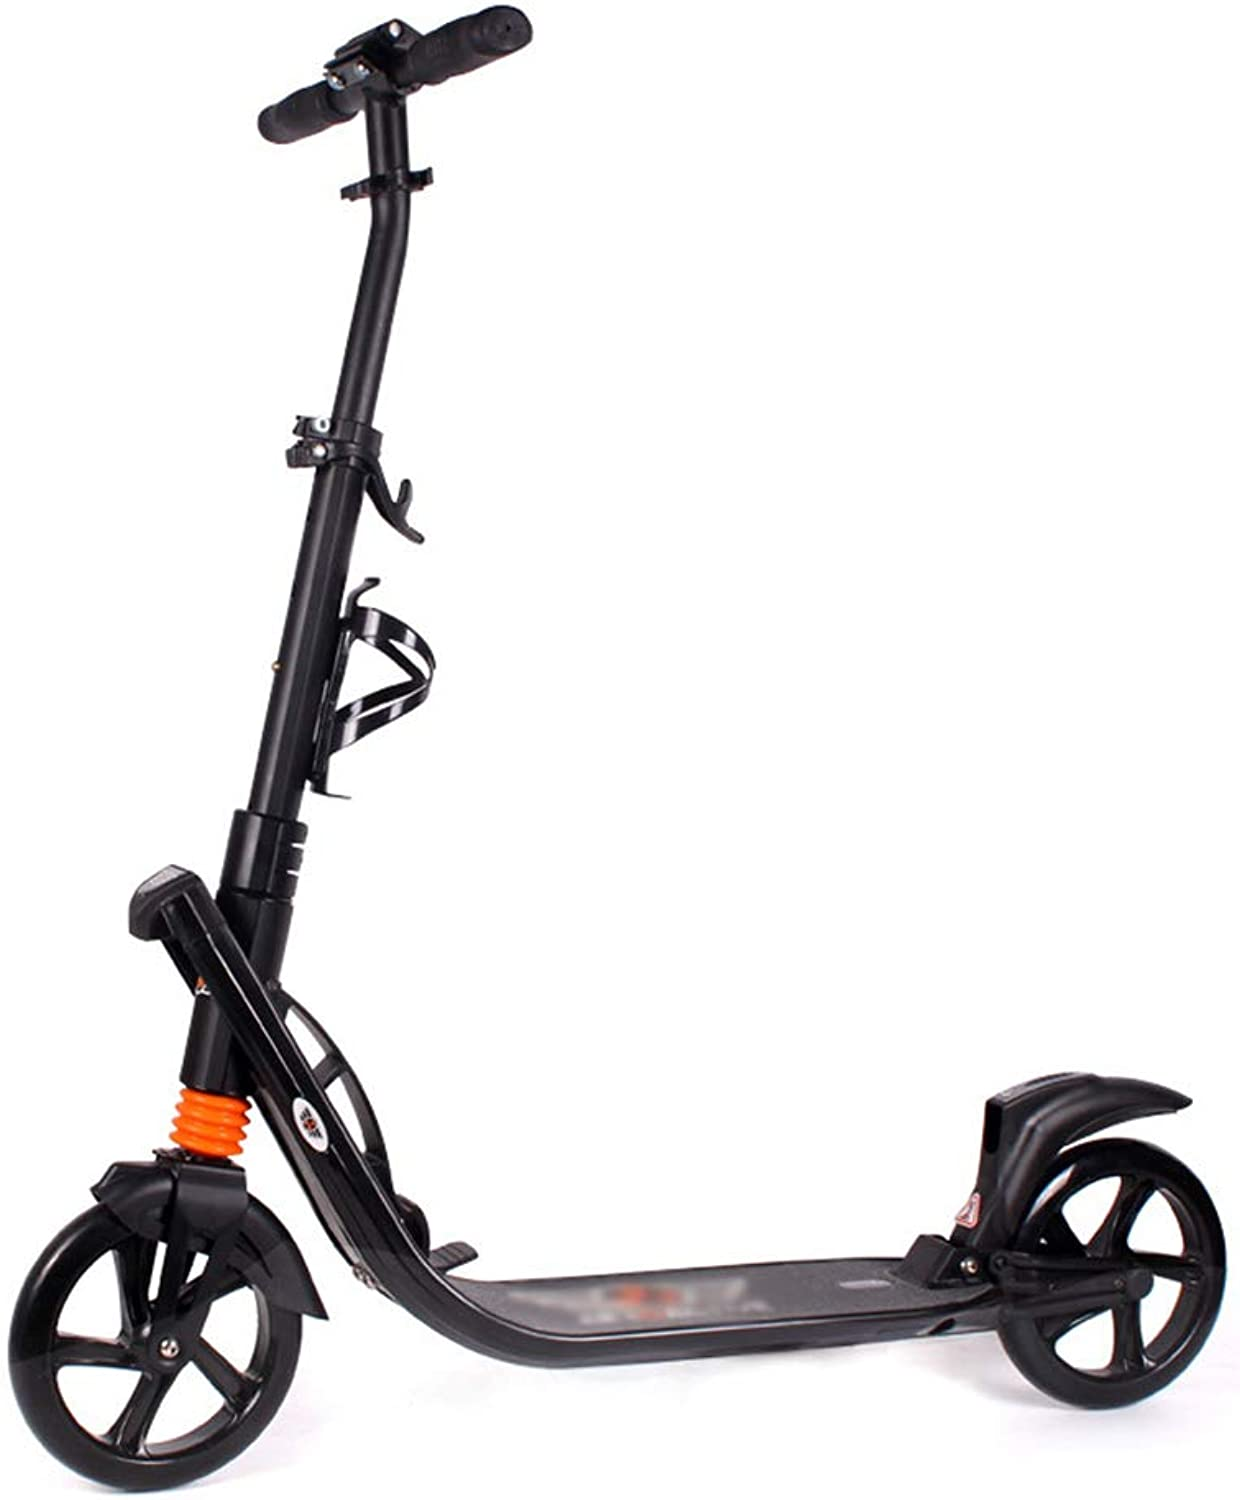 Foldable Unisex Adult Kick Scooters with Water Cup Holder, Portable Commuter Scooters with Big Wheels, Birthday Gifts for Women Men Teens Kids, NonElectric